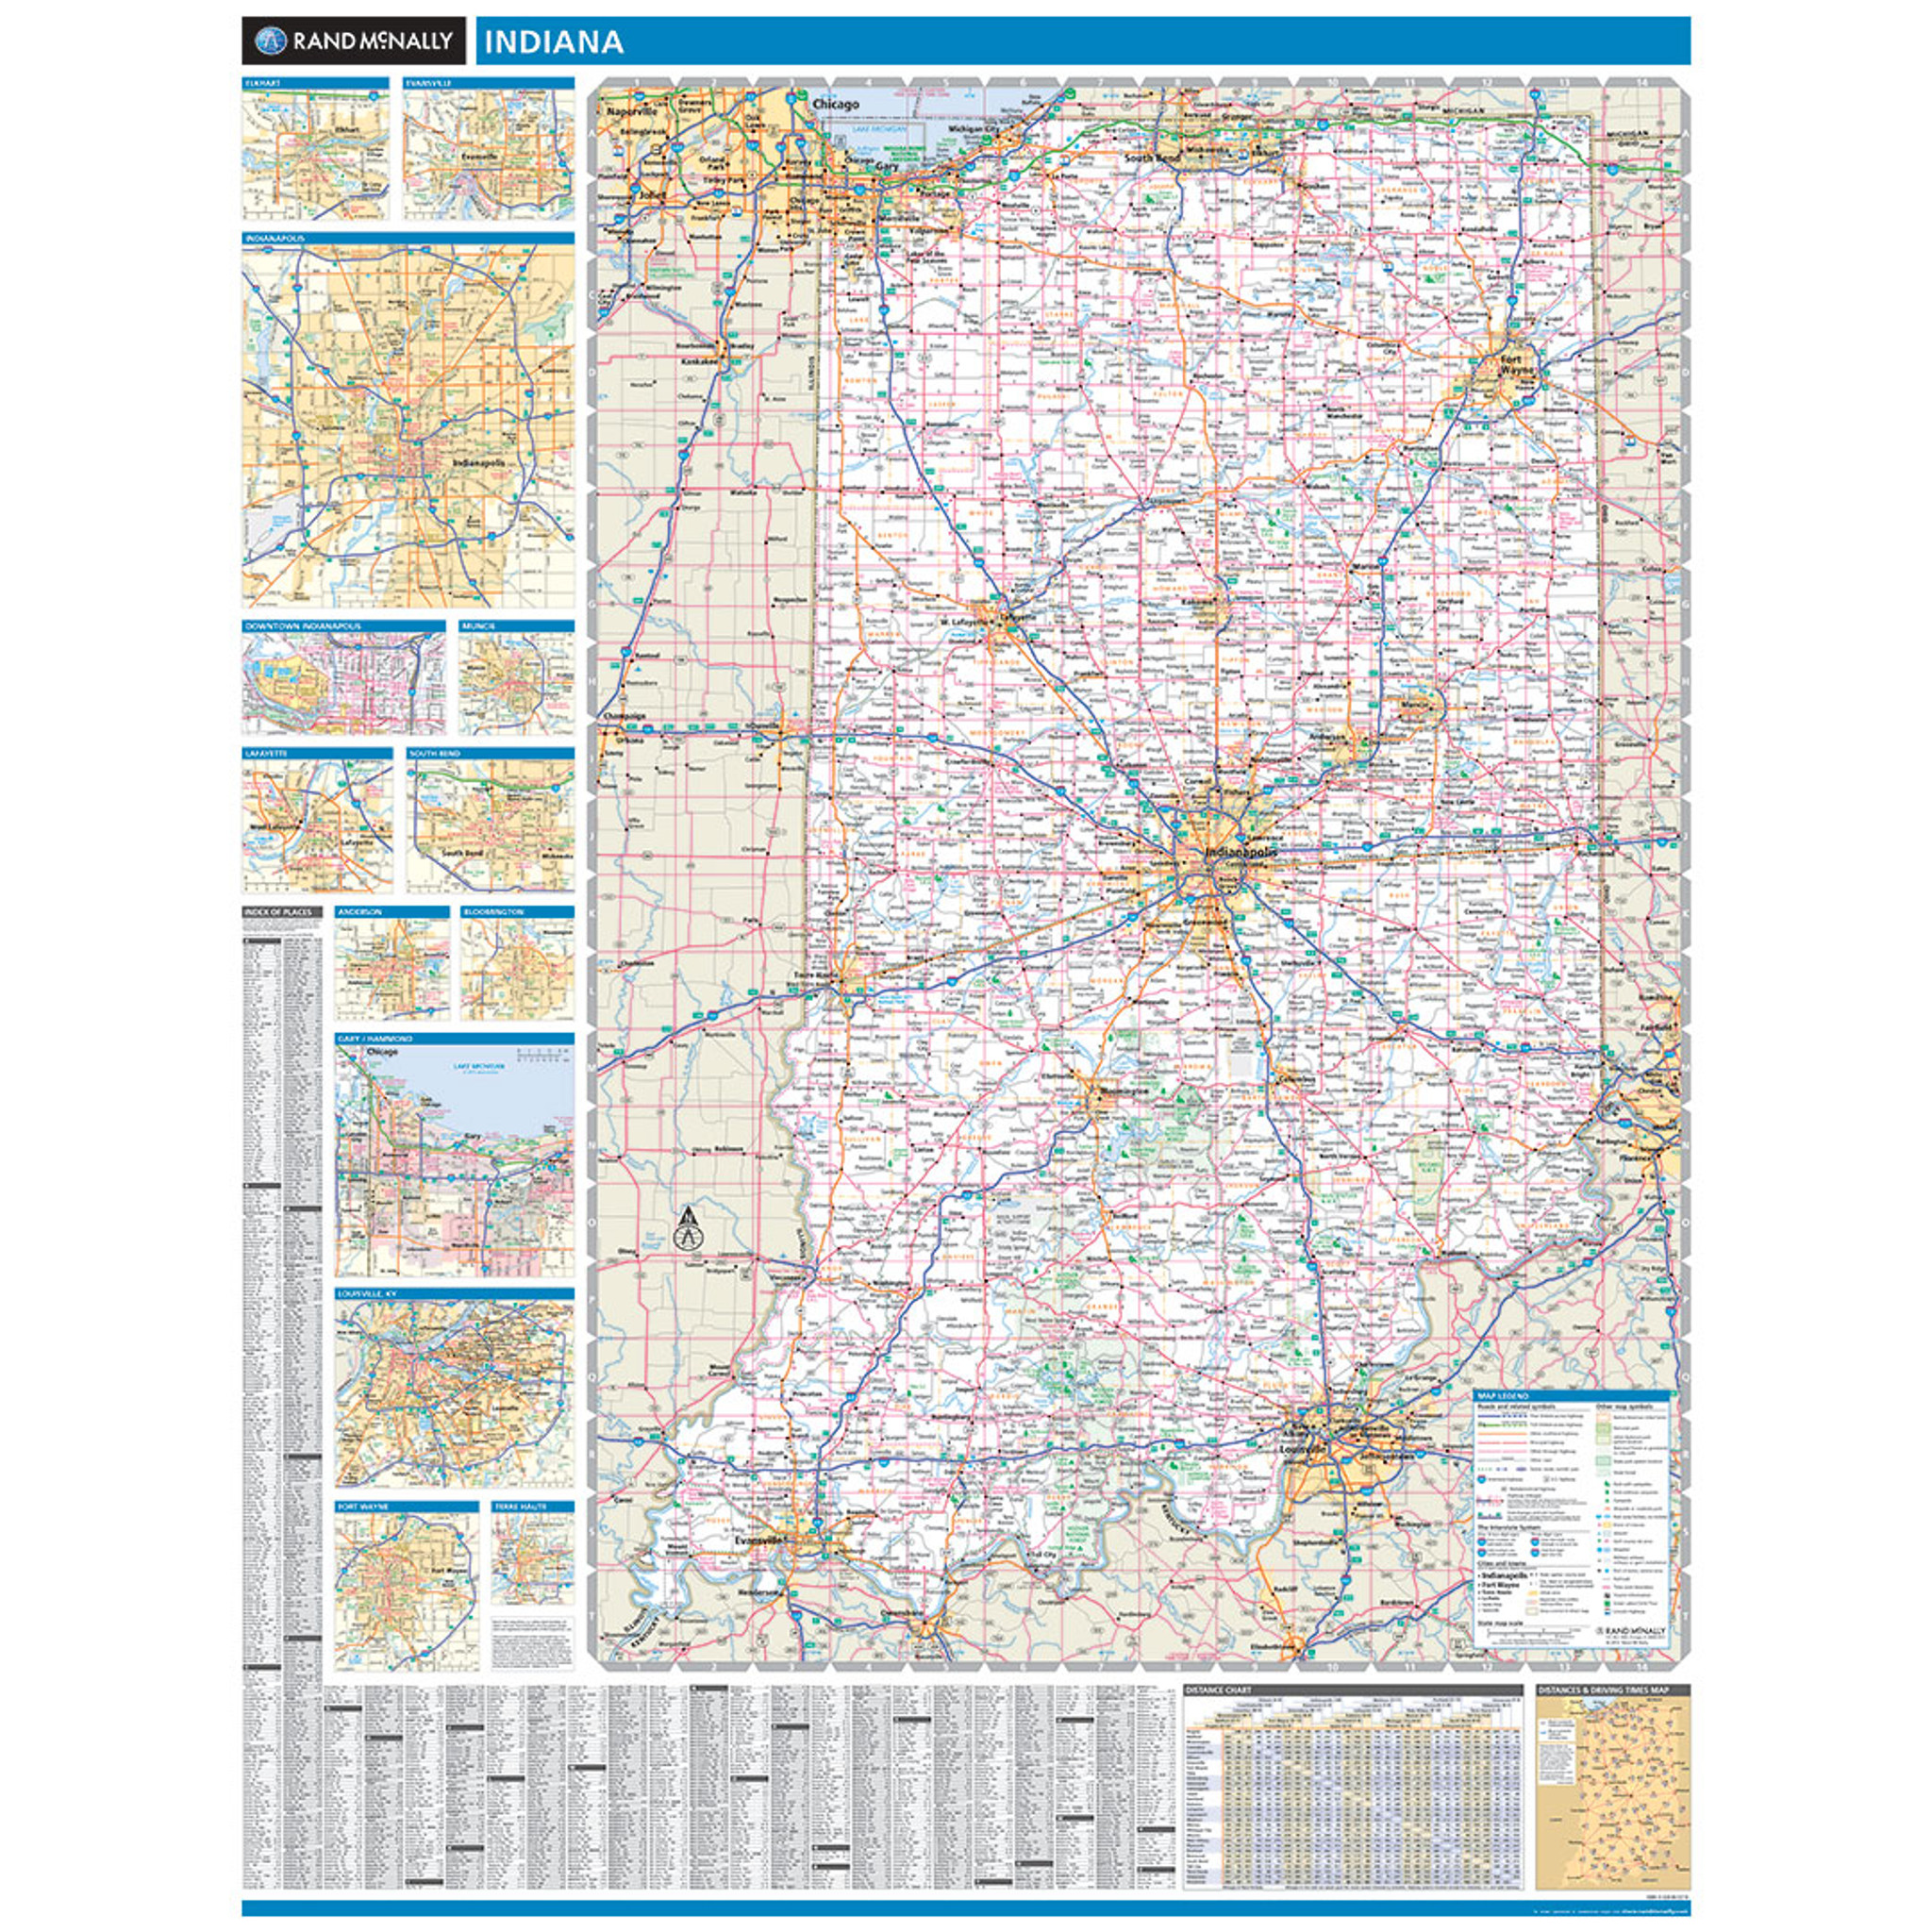 Rand McNally Indiana State Wall Map - Map of state of indiana